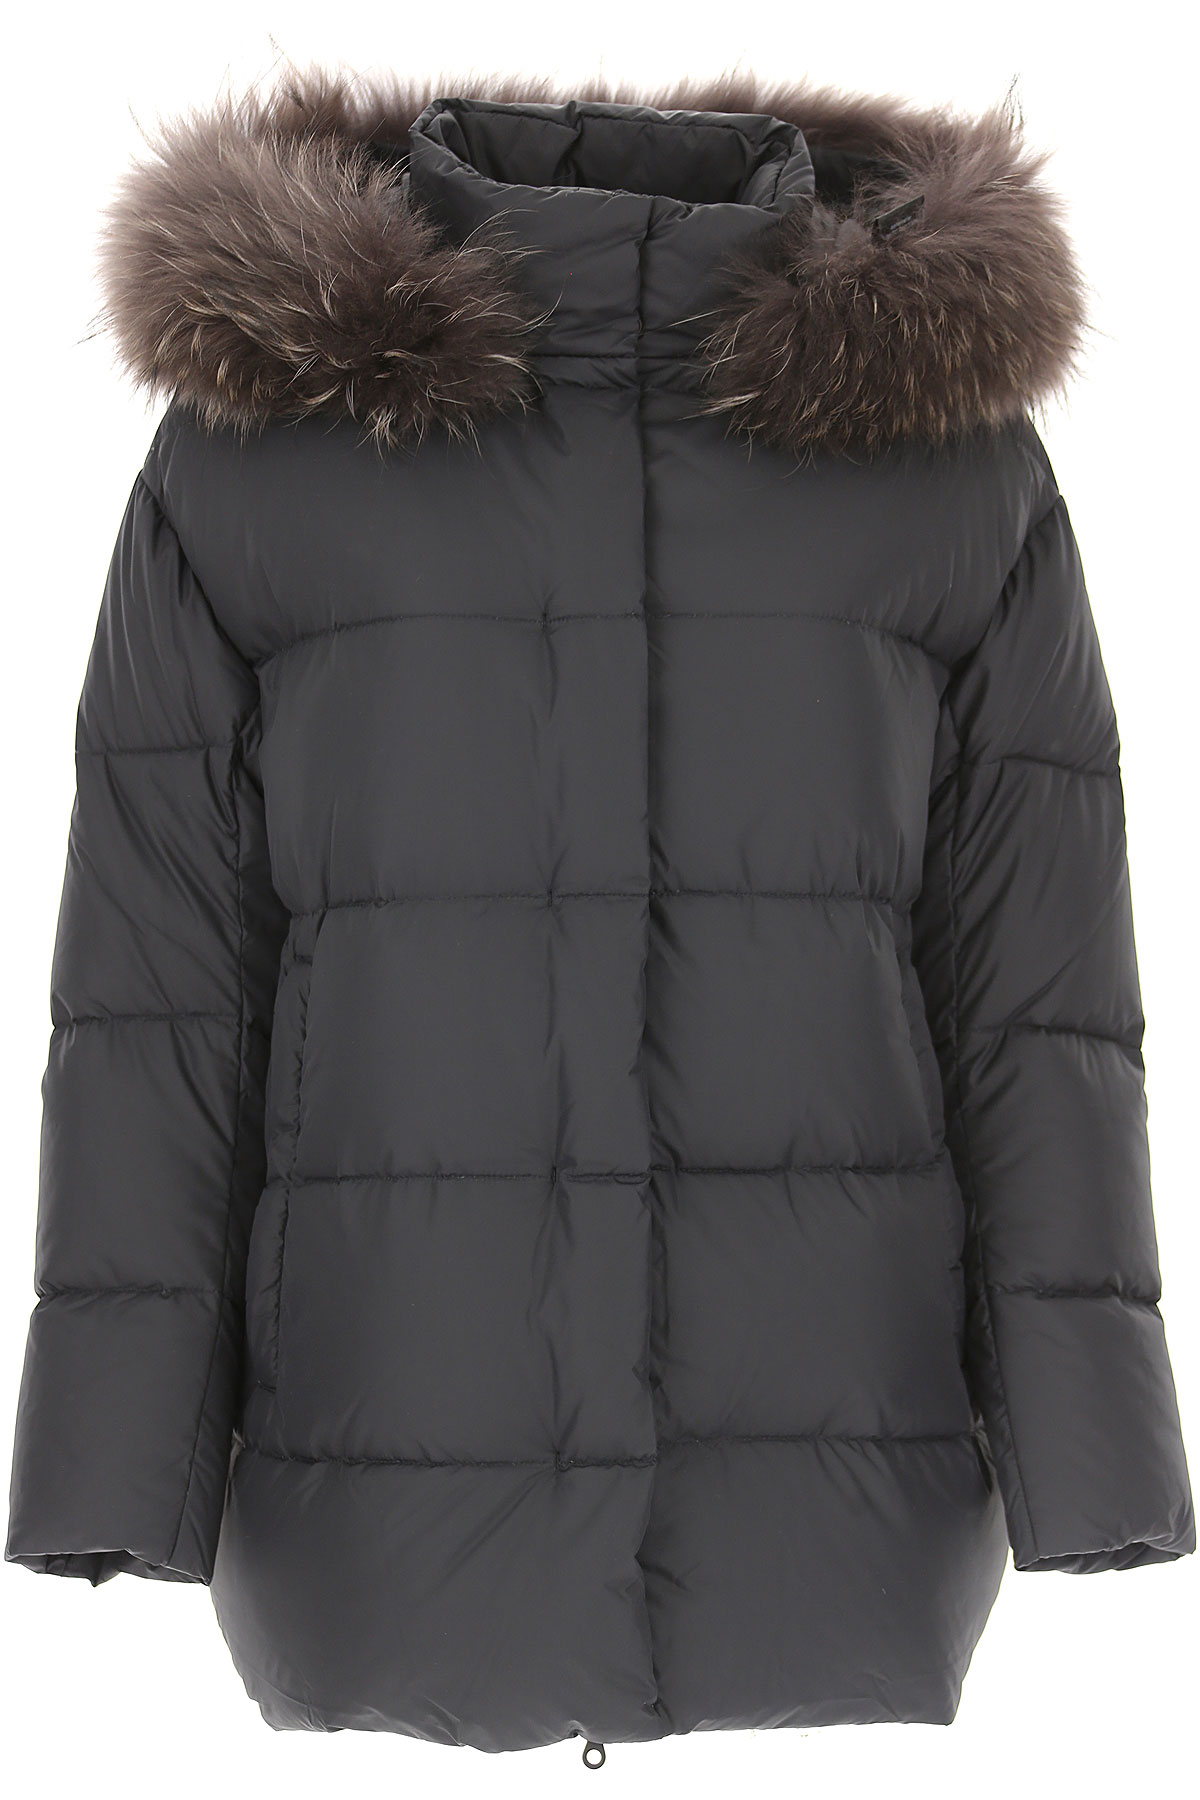 Image of Duvetica Down Jacket for Women, Puffer Ski Jacket, Black, polyamide, 2017, 6 8